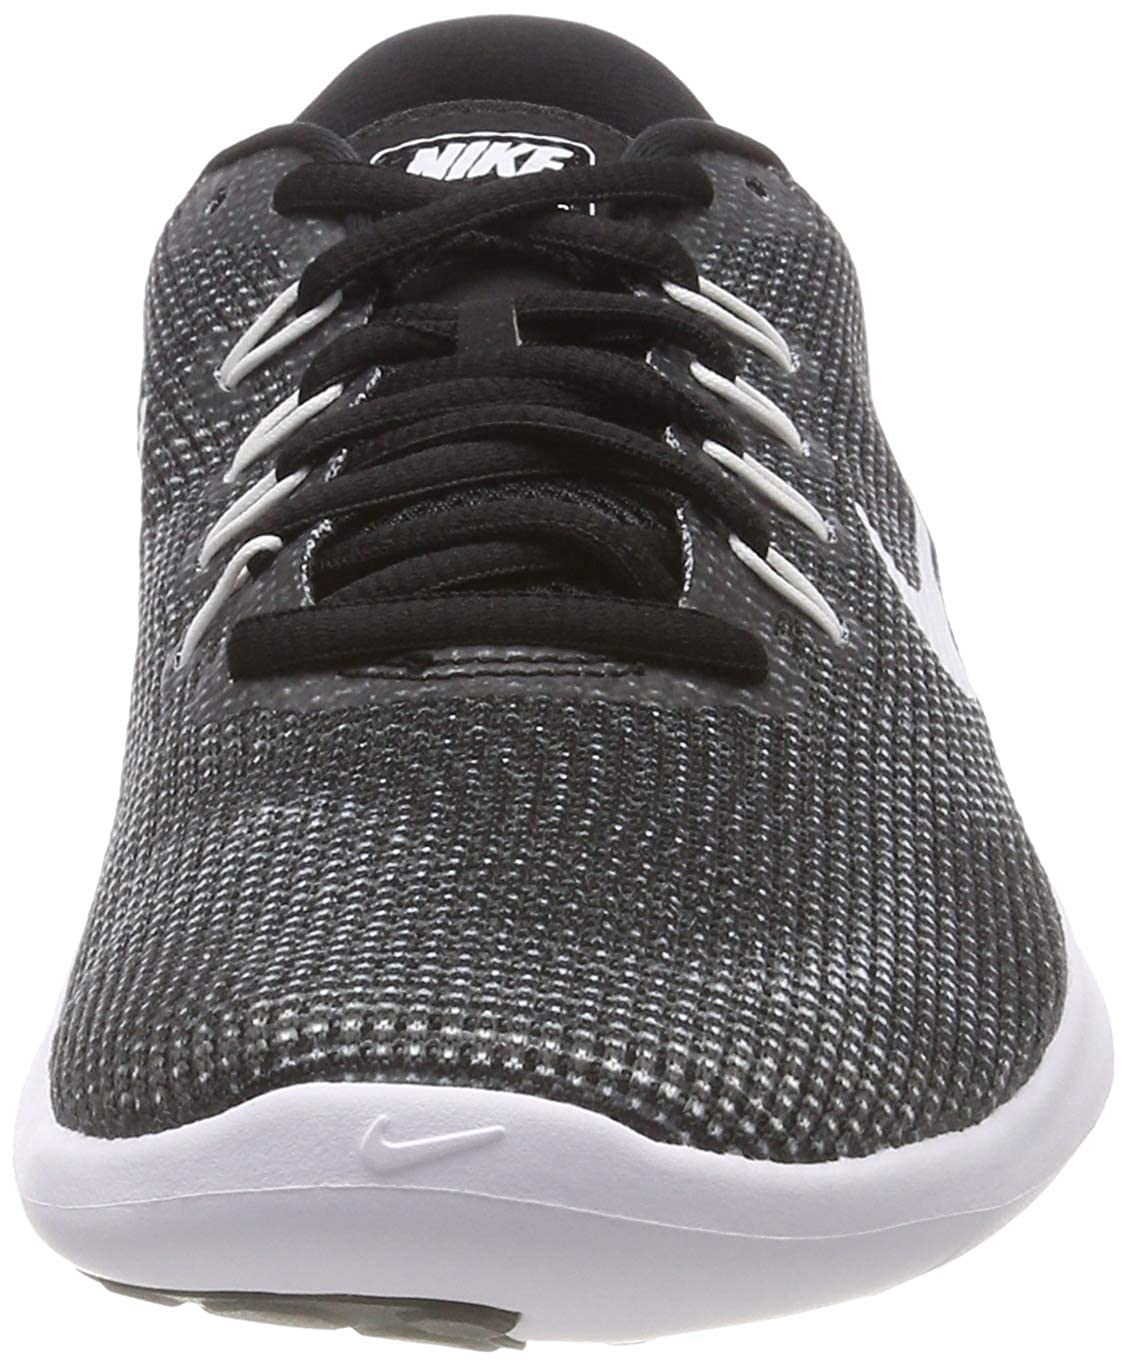 5d488d26d8db Amazon.com  Nike Women s Flex 2017 Rn Trainers  Nike  Sports   Outdoors